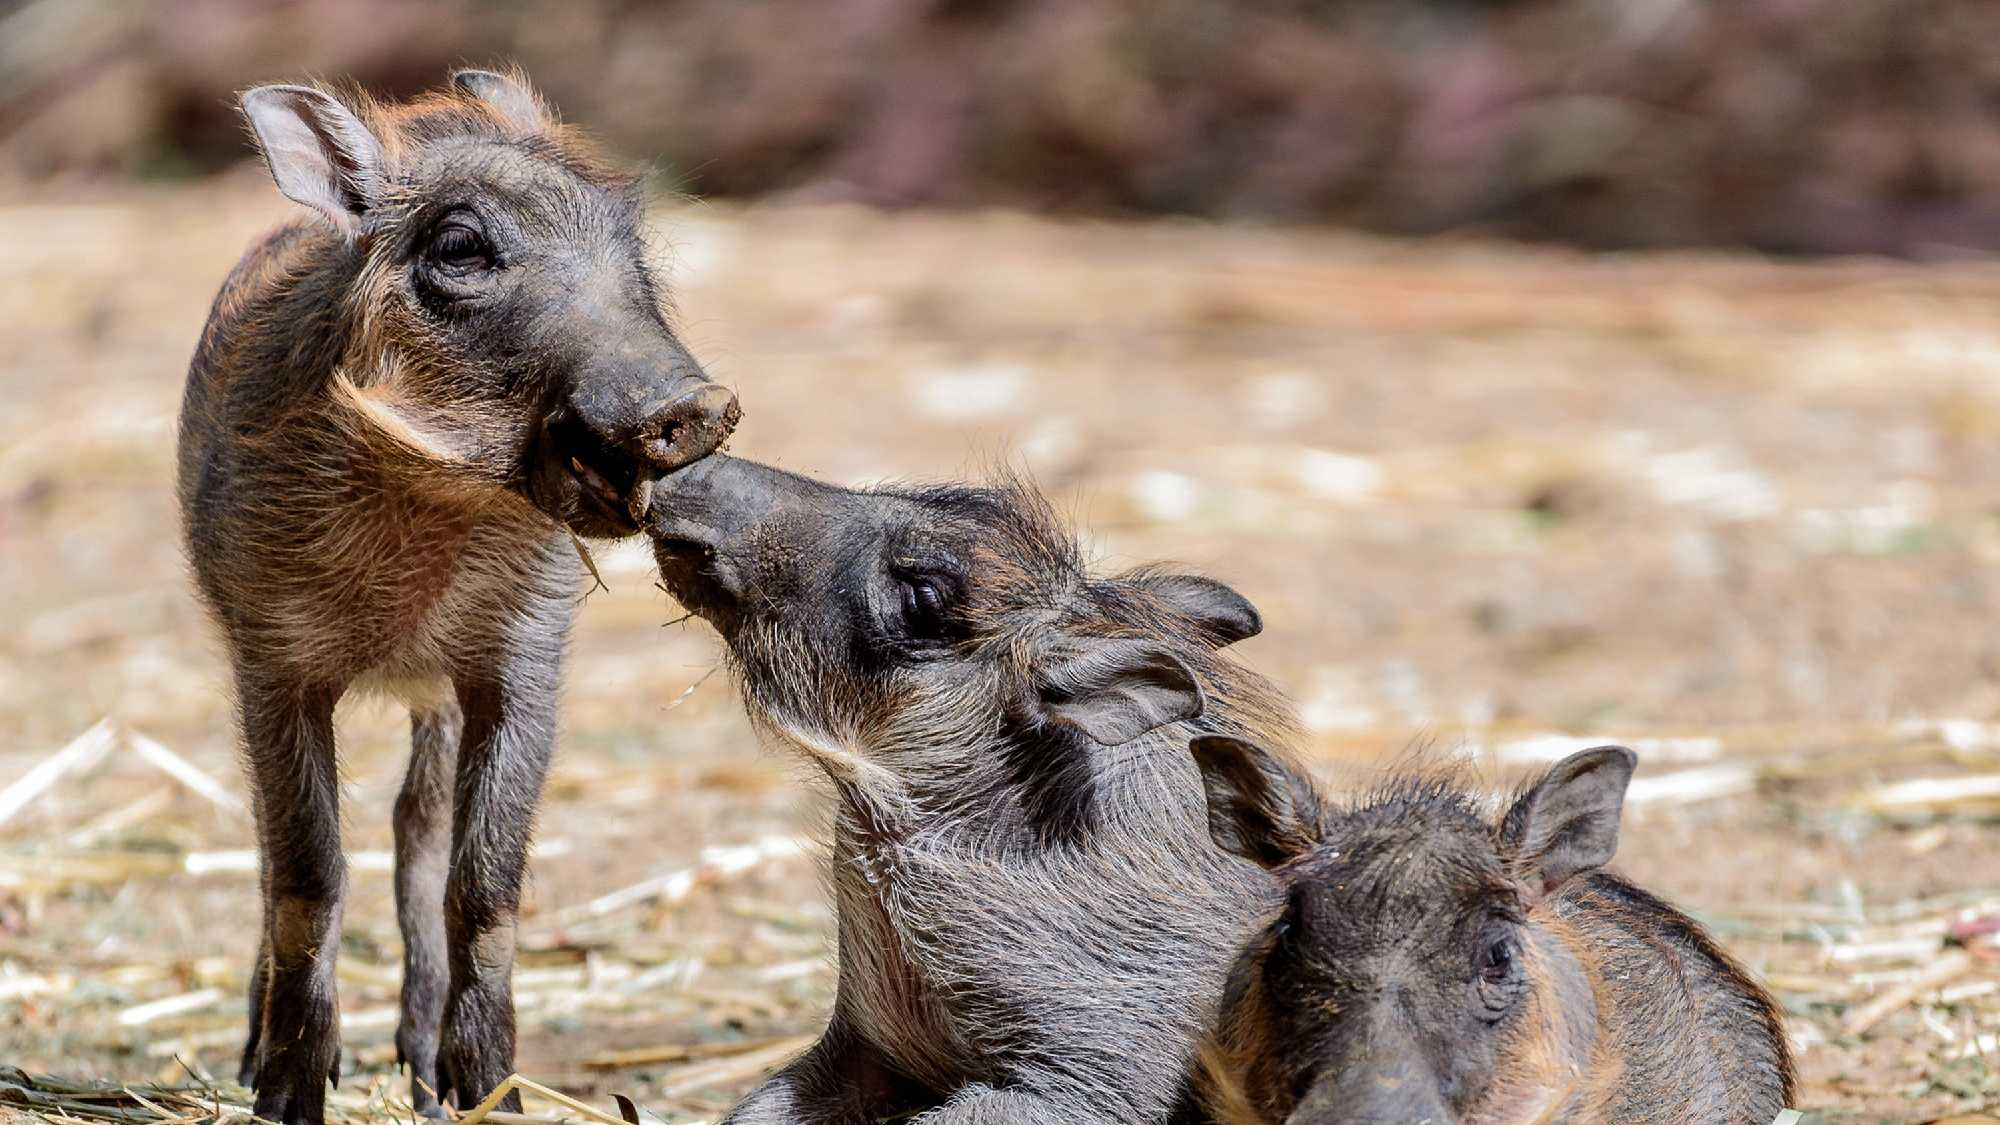 New baby warthogs will make their debut at the Oakland Zoo.